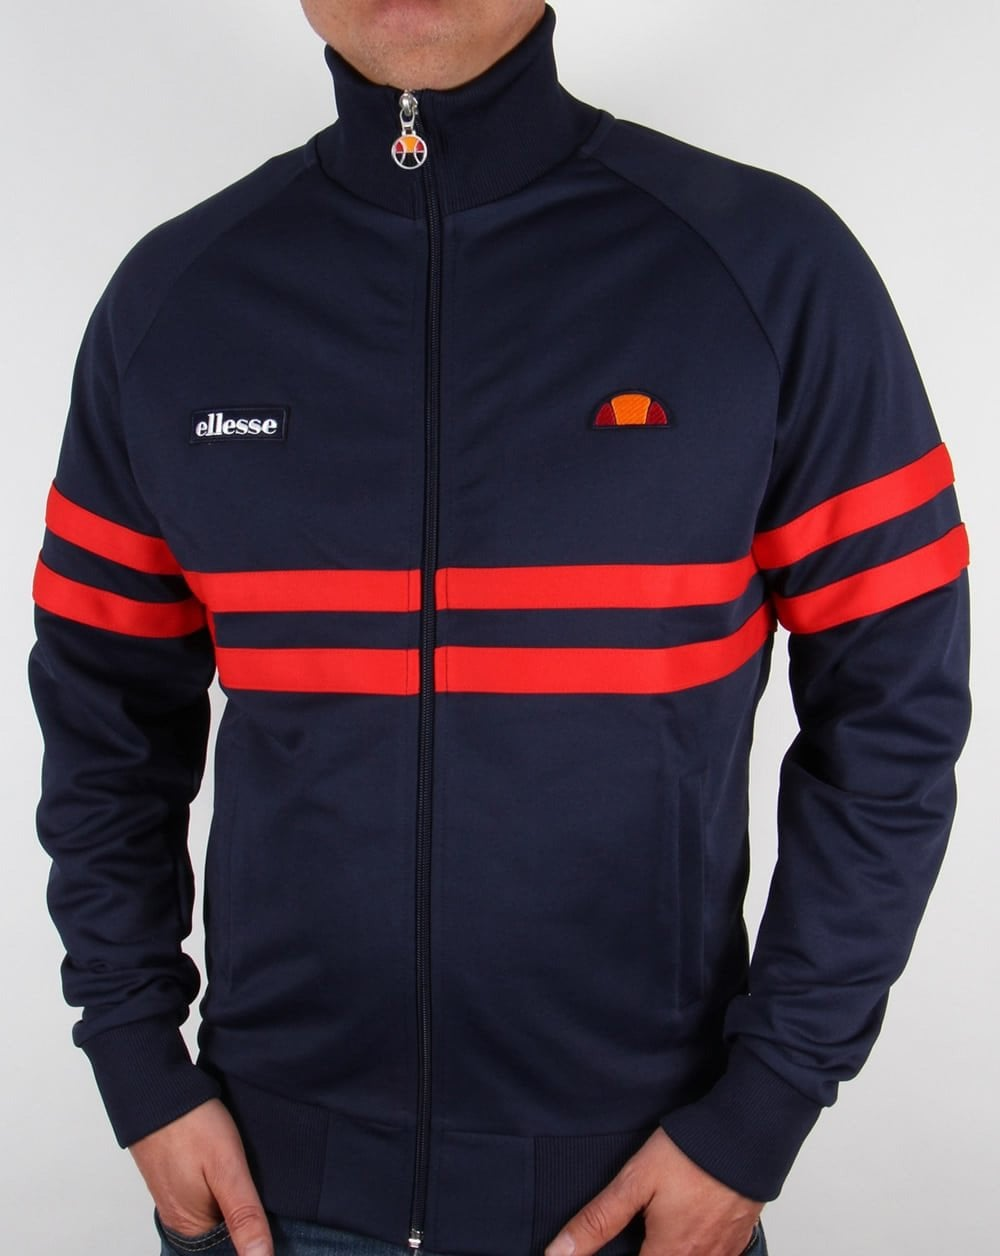 45f05ae2 Ellesse Rimini Track Top Navy/Red